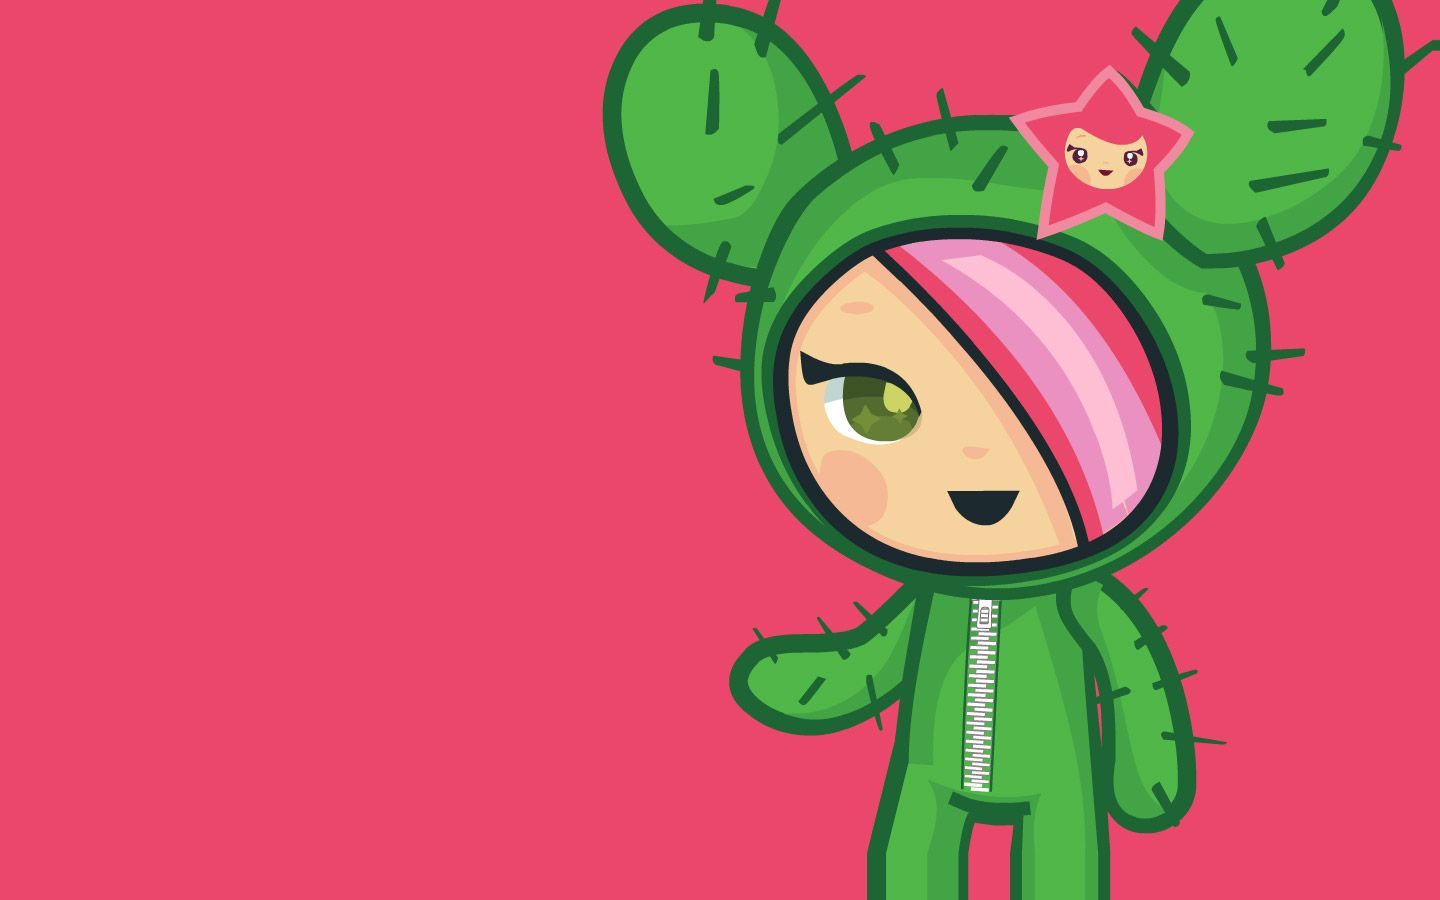 1440x900 tokidoki desktop wallpaper